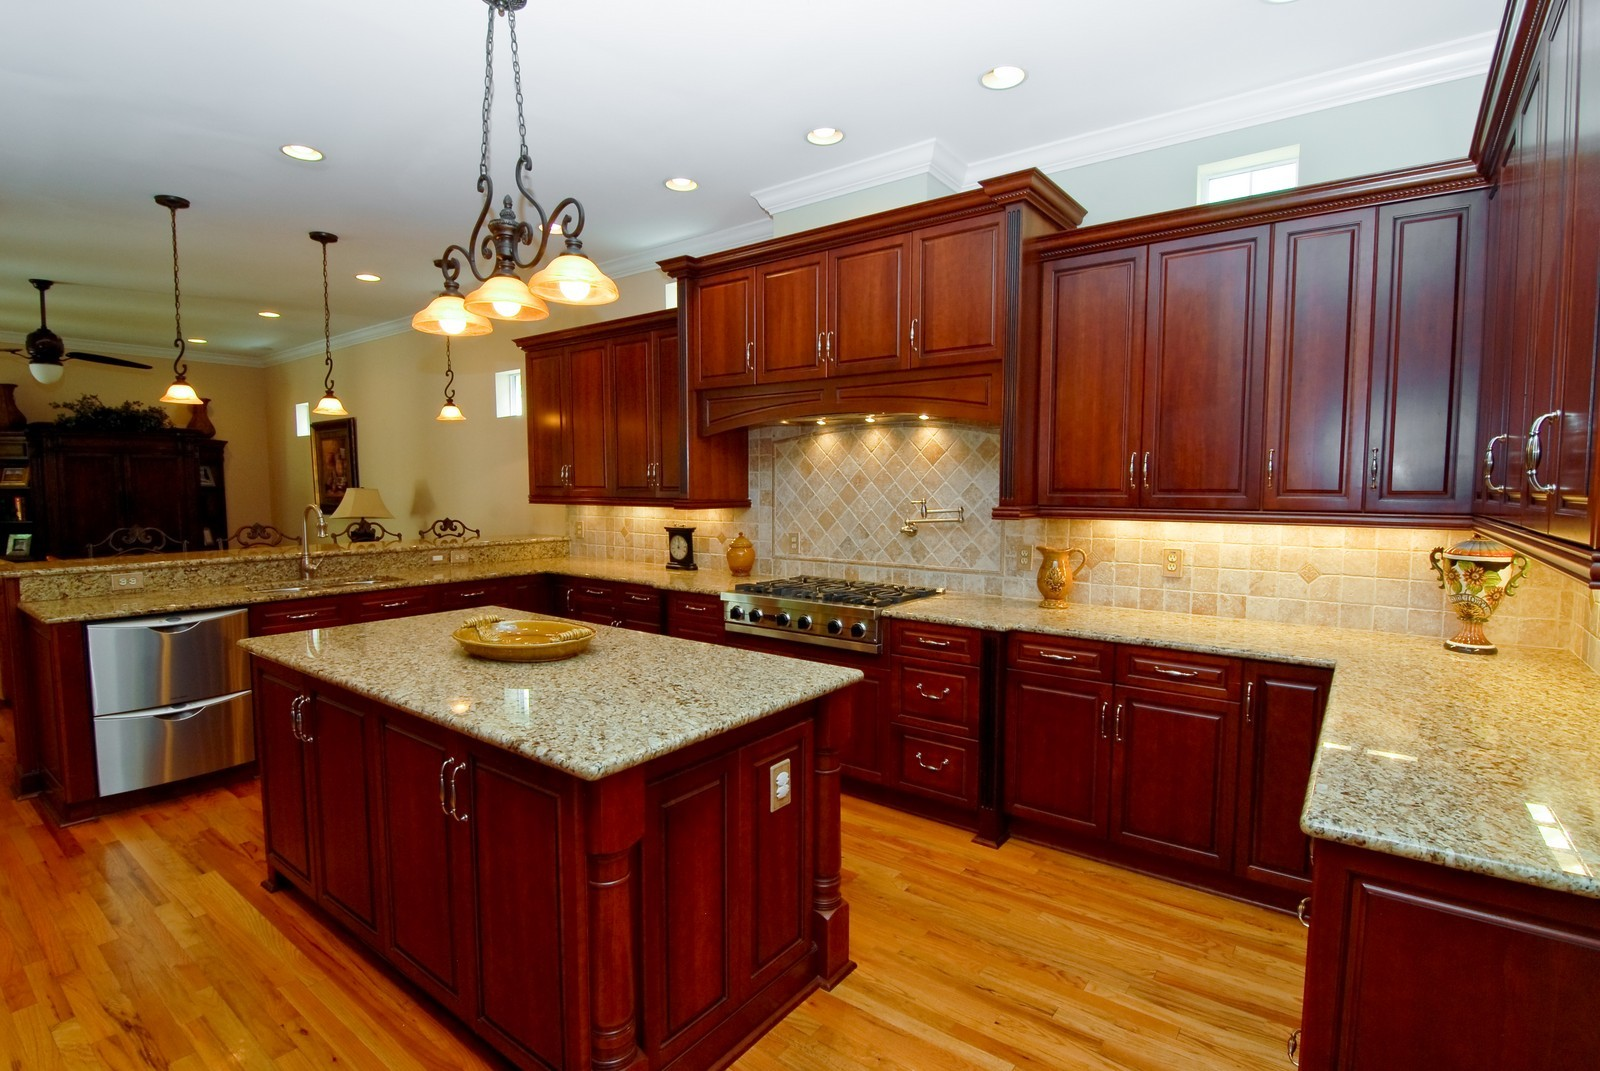 Real Estate Photography - 3107 Fountain Blvd, Tampa, FL, 33609 - Kitchen / Living Room